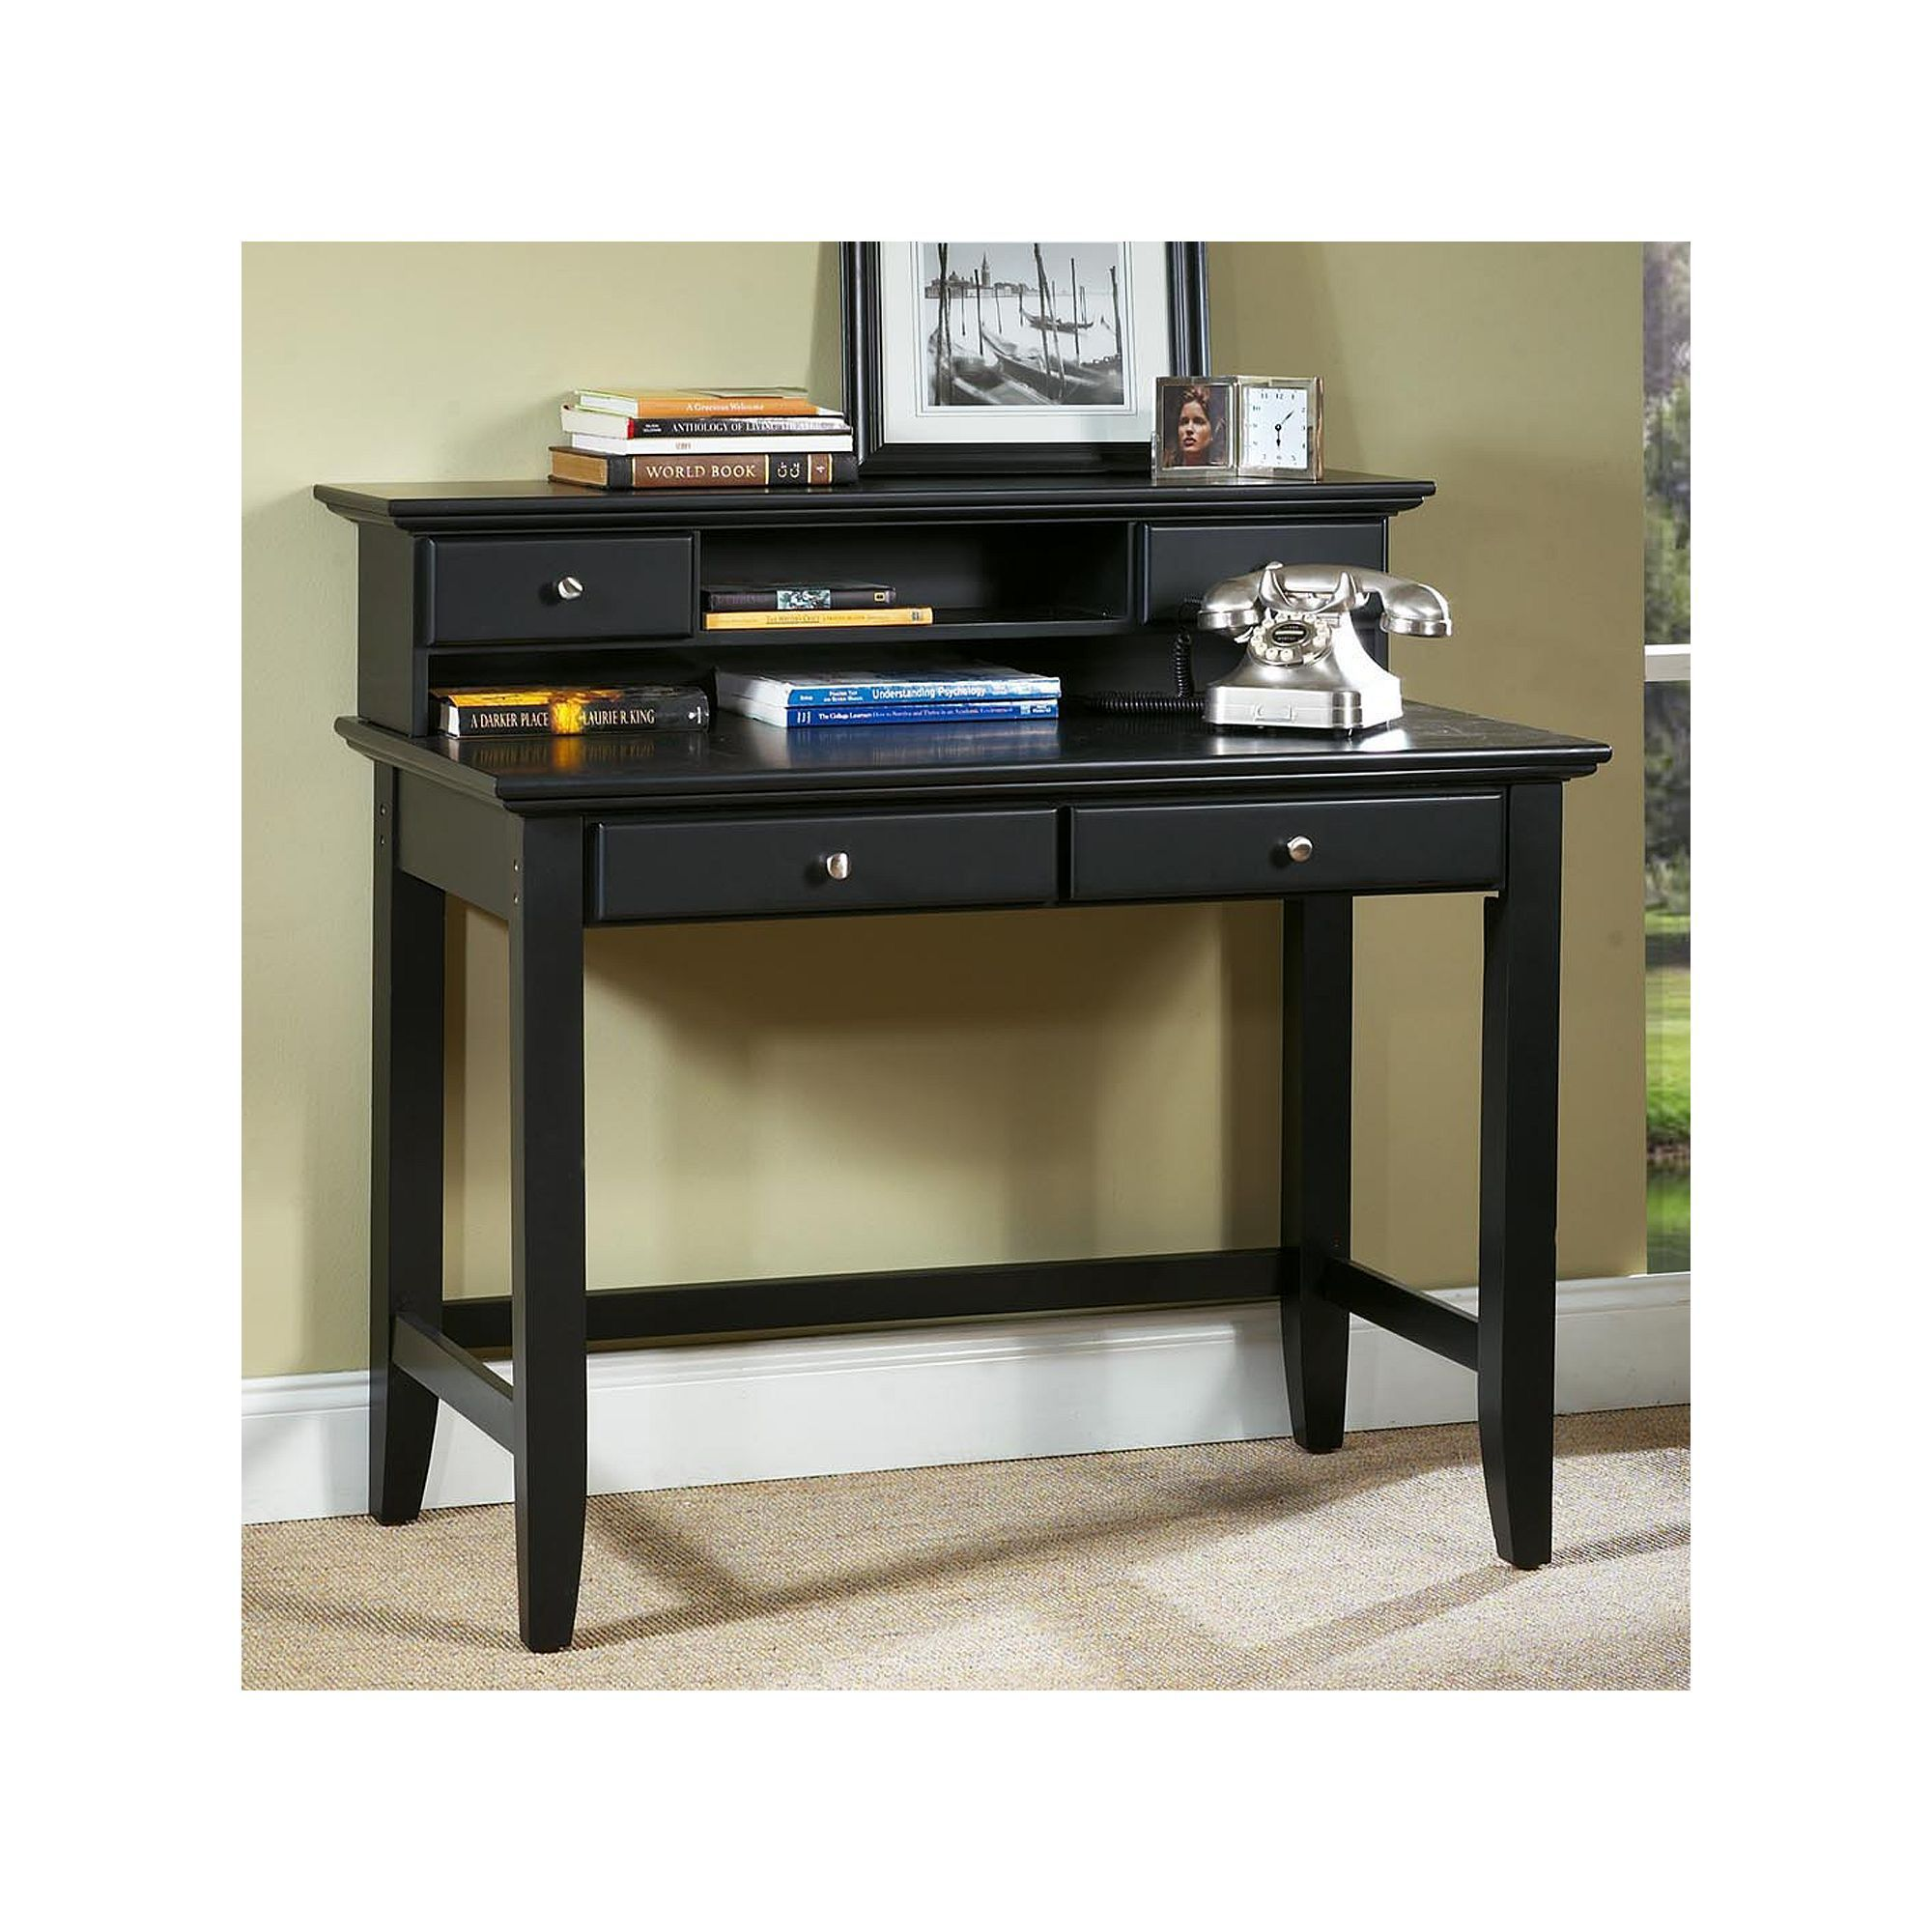 . Home Styles Bedford Student Desk   Hutch   Products   Desk hutch